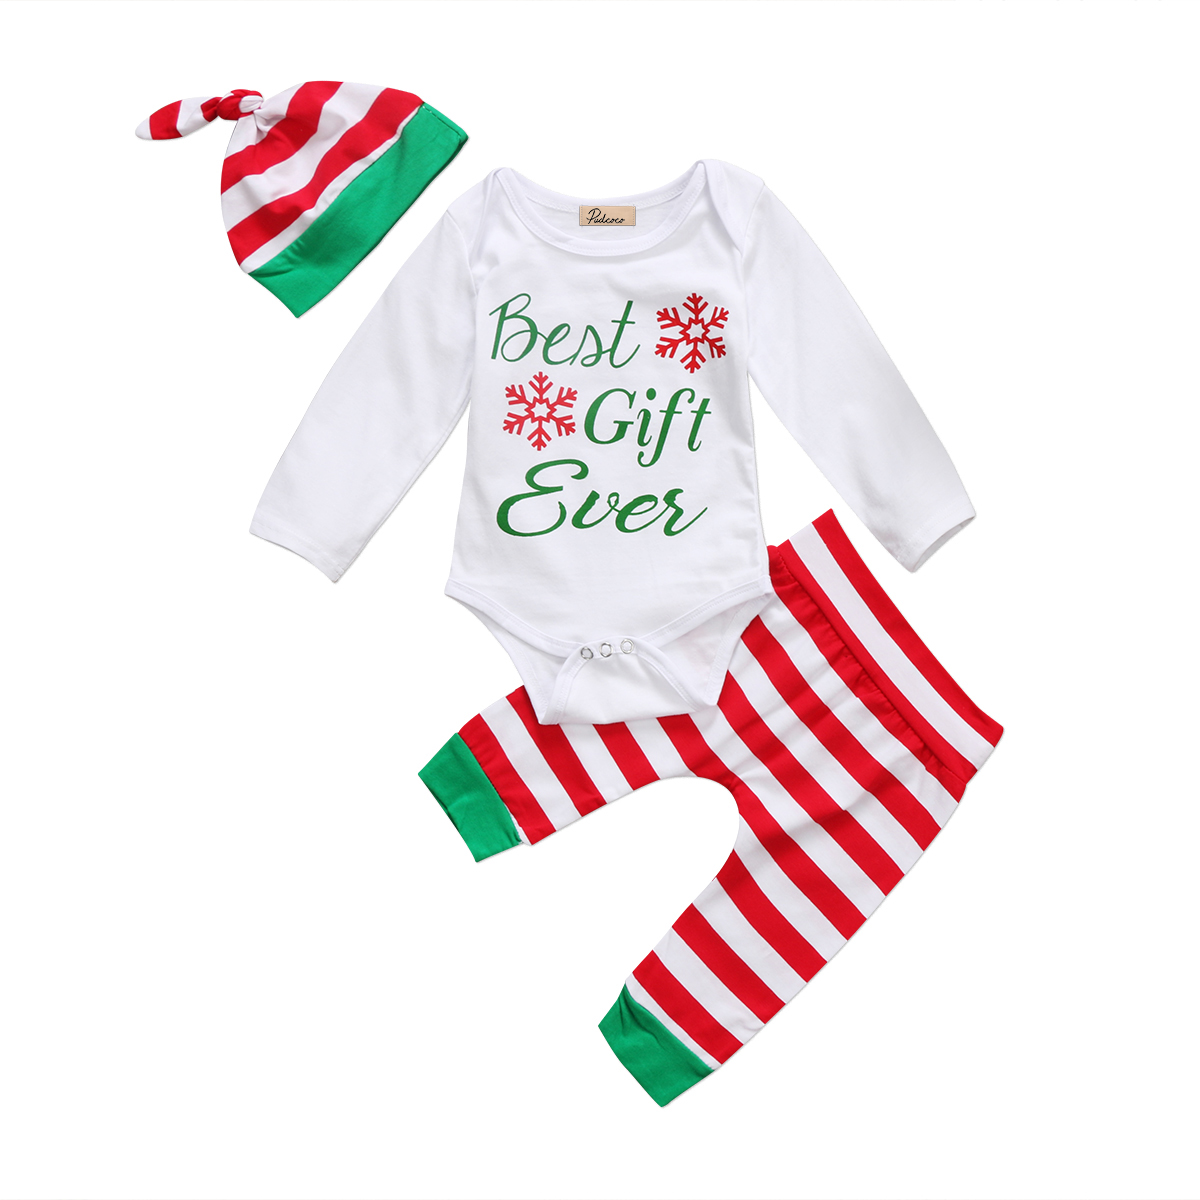 2PCS Baby Christmas Clothing Sets Newborn Baby Boys Girls Tops Long Sleeve Romper Striped Pants Hat Outfits Set Xmas Clothes battery capacity testing electronic load nicd and nimh mobile power supply tester tec 06 lithium battery